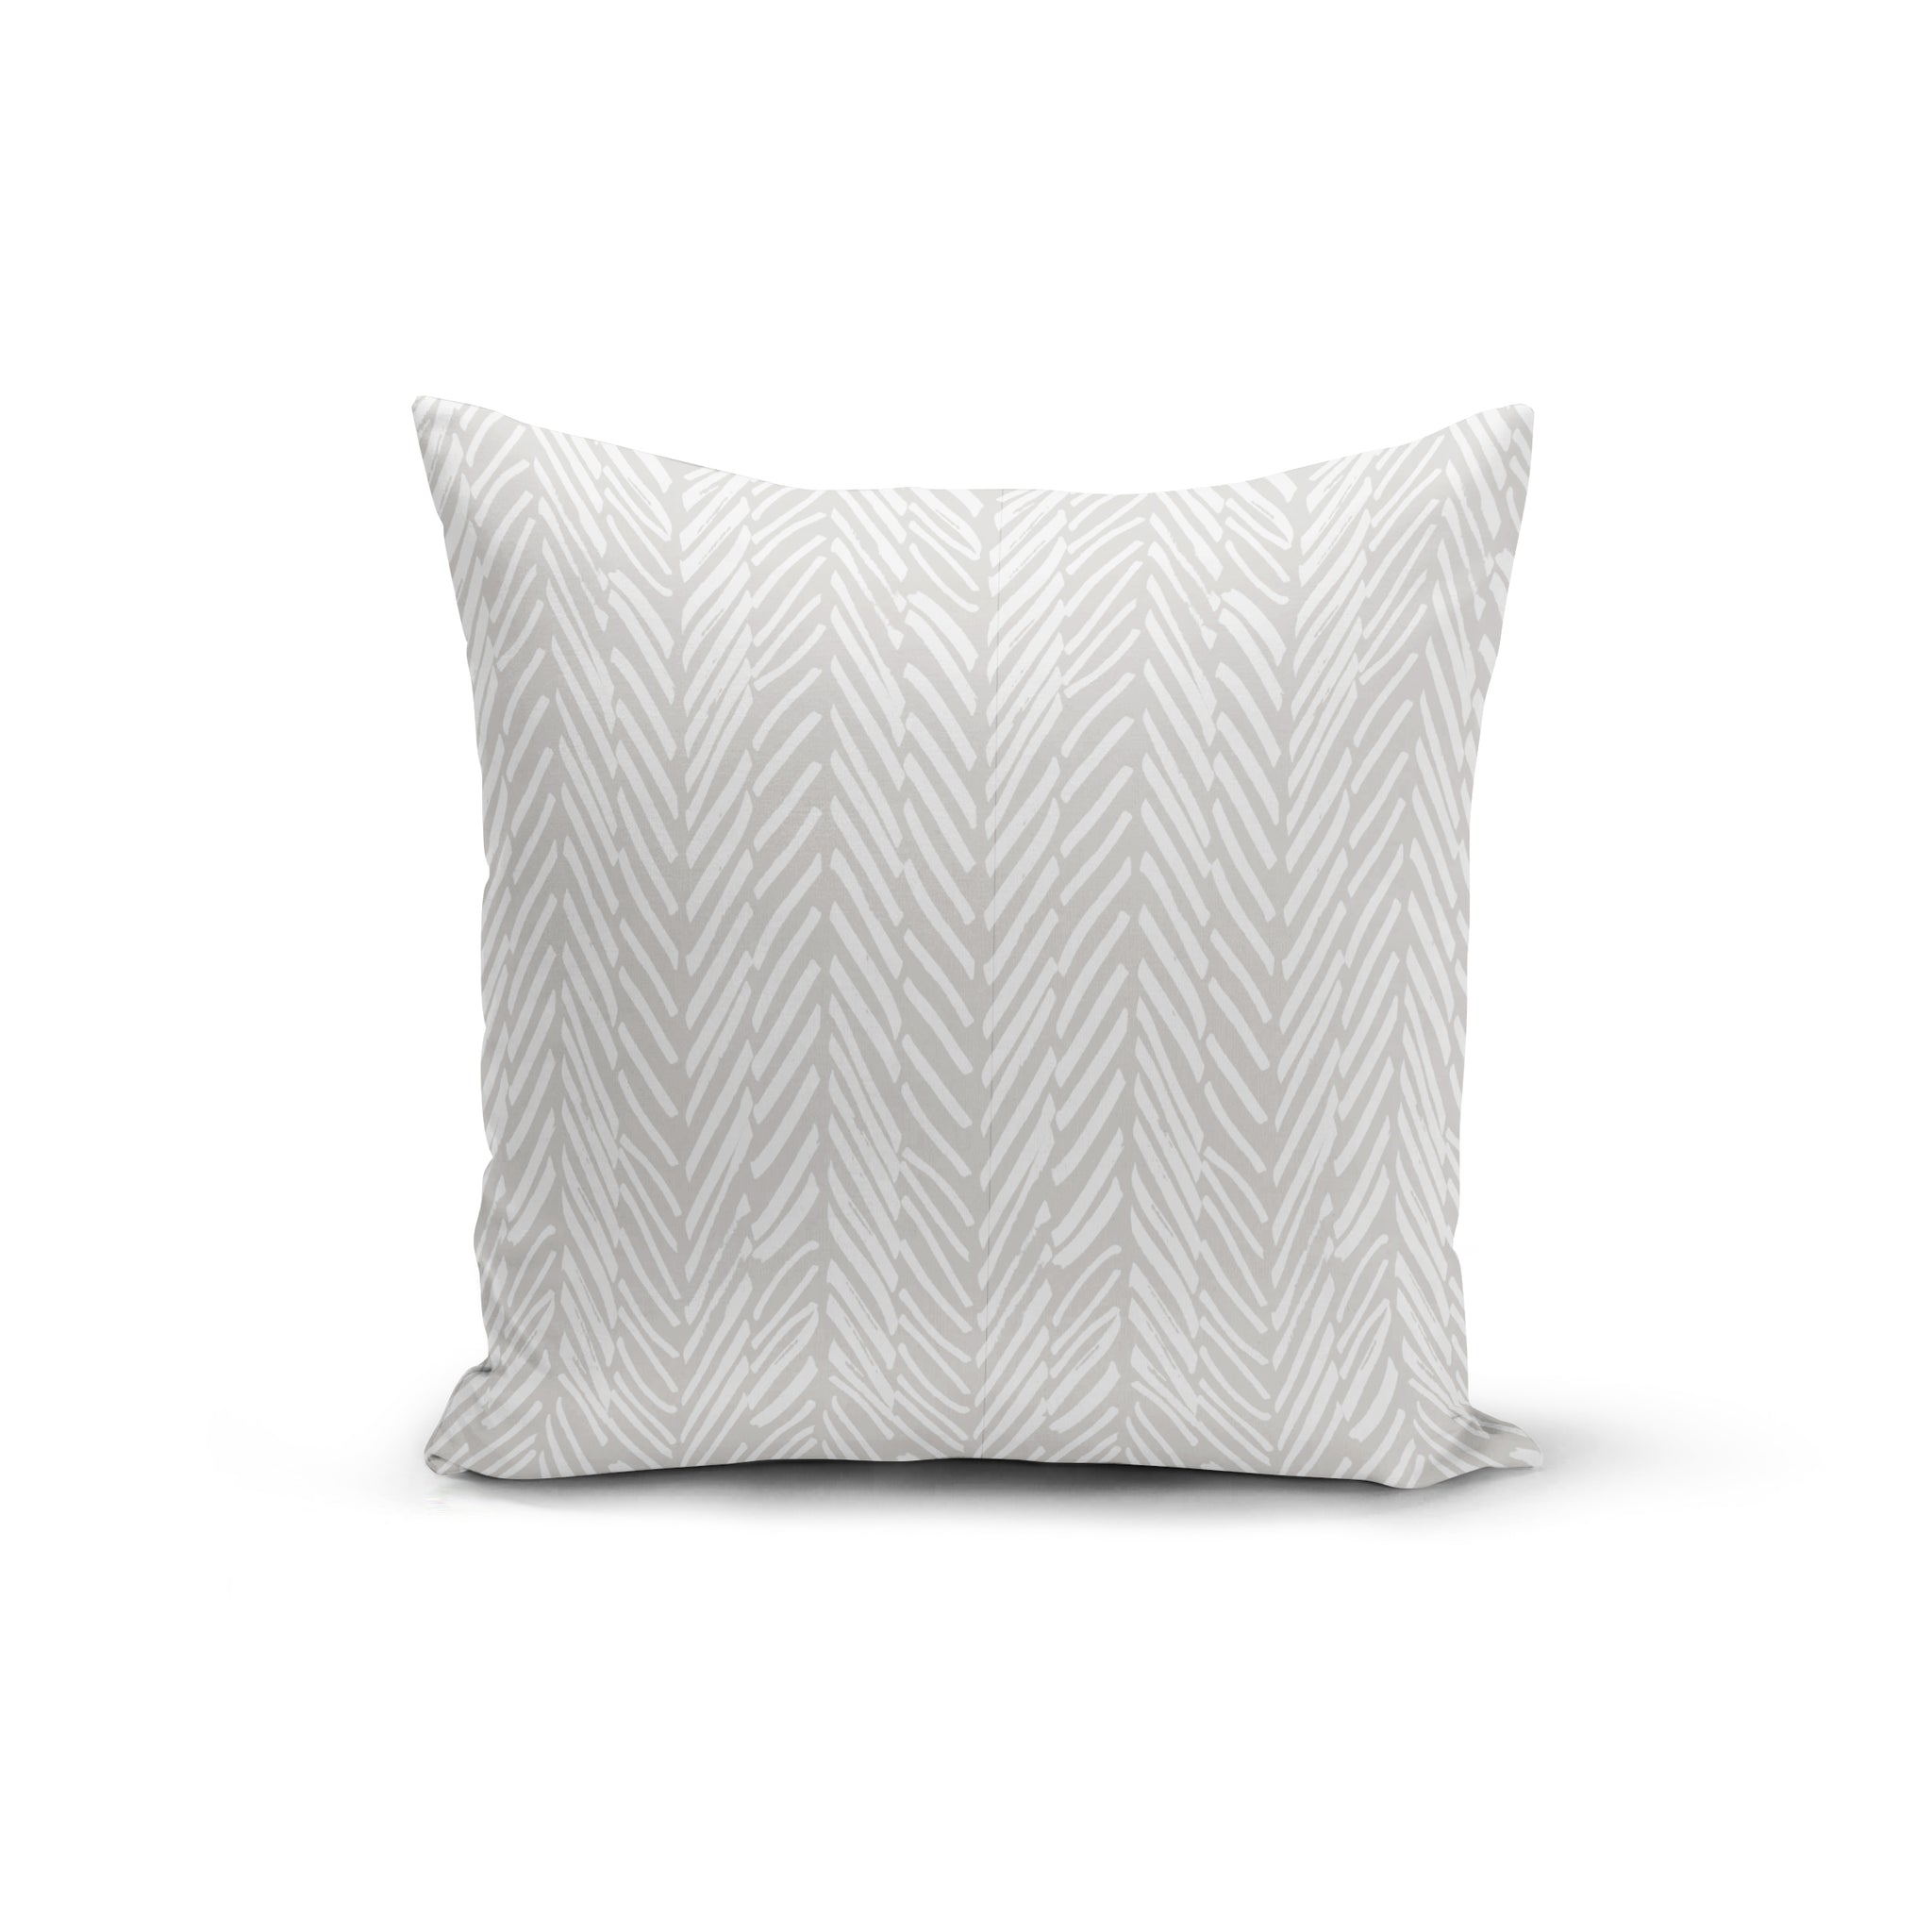 Abstract Lines Throw Pillows,18x18 / Multicolored / Polyester